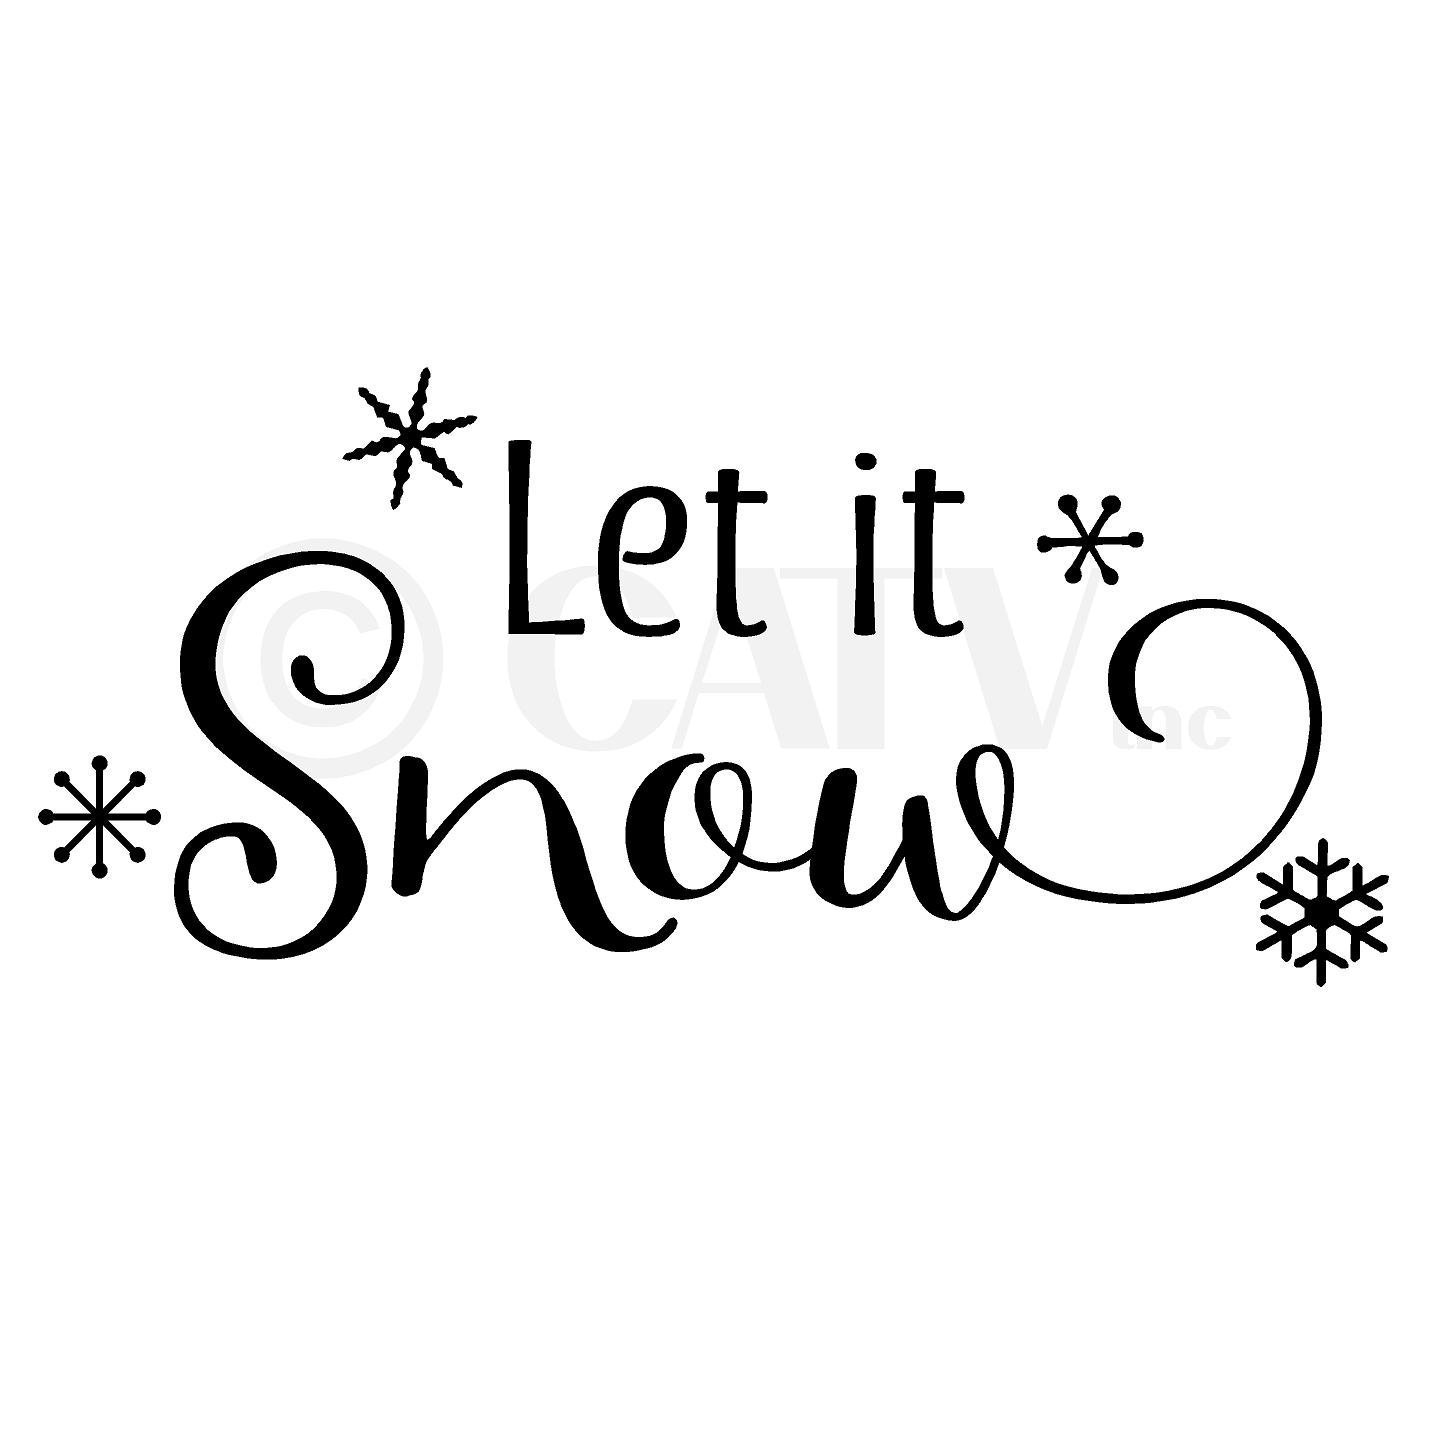 Let It Snow With Snowflakes Wall Decal Saying Vinyl Lettering Quote Sticker Christmas 12 5 H X 27 L Black Walmart Com Walmart Com